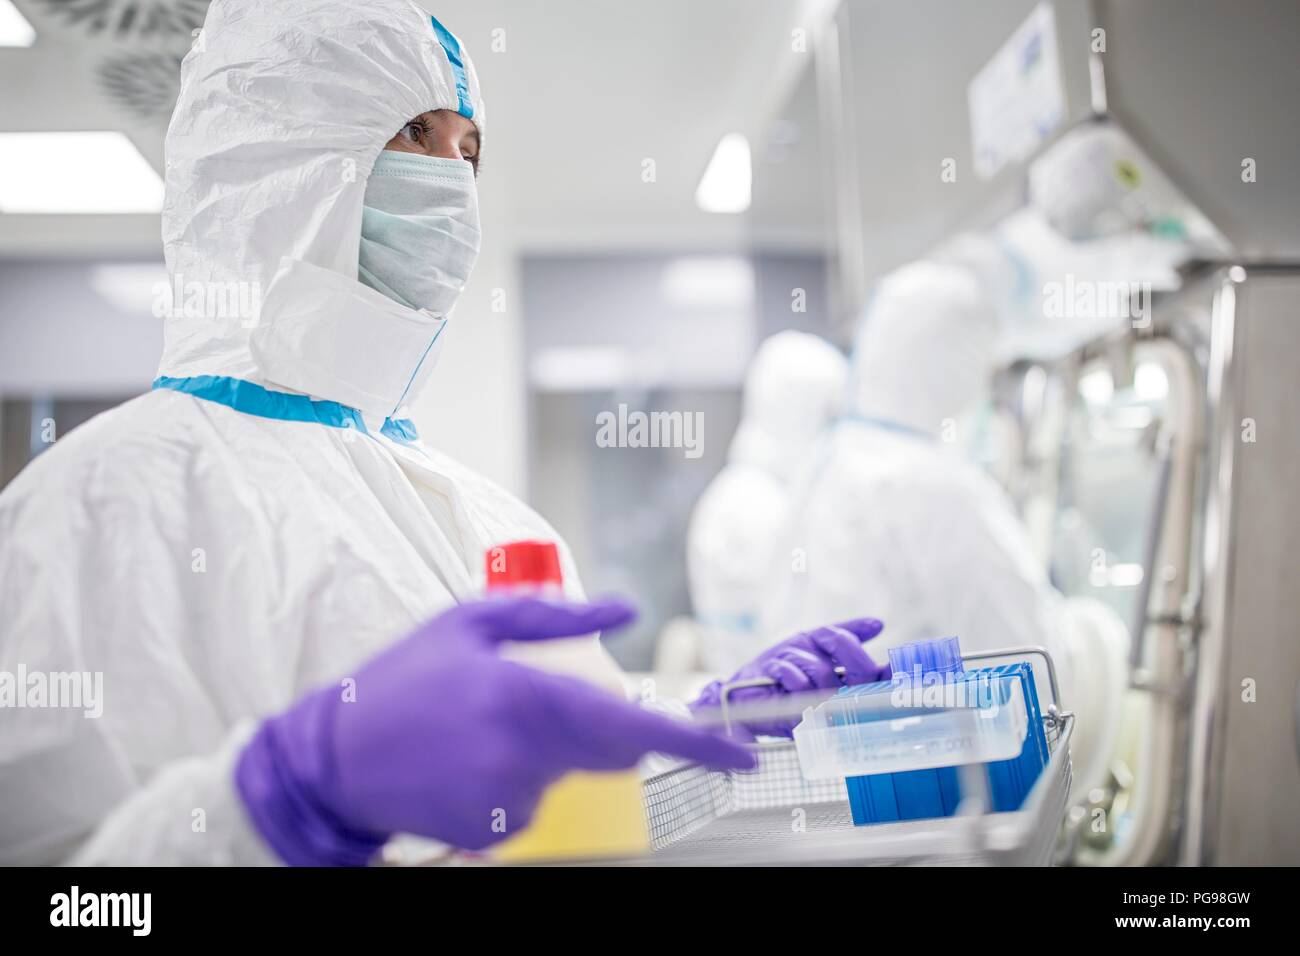 Technician carrying equipment in a laboratory that manufactures human tissues for implant. Such tissues include bone and skin grafts. - Stock Image